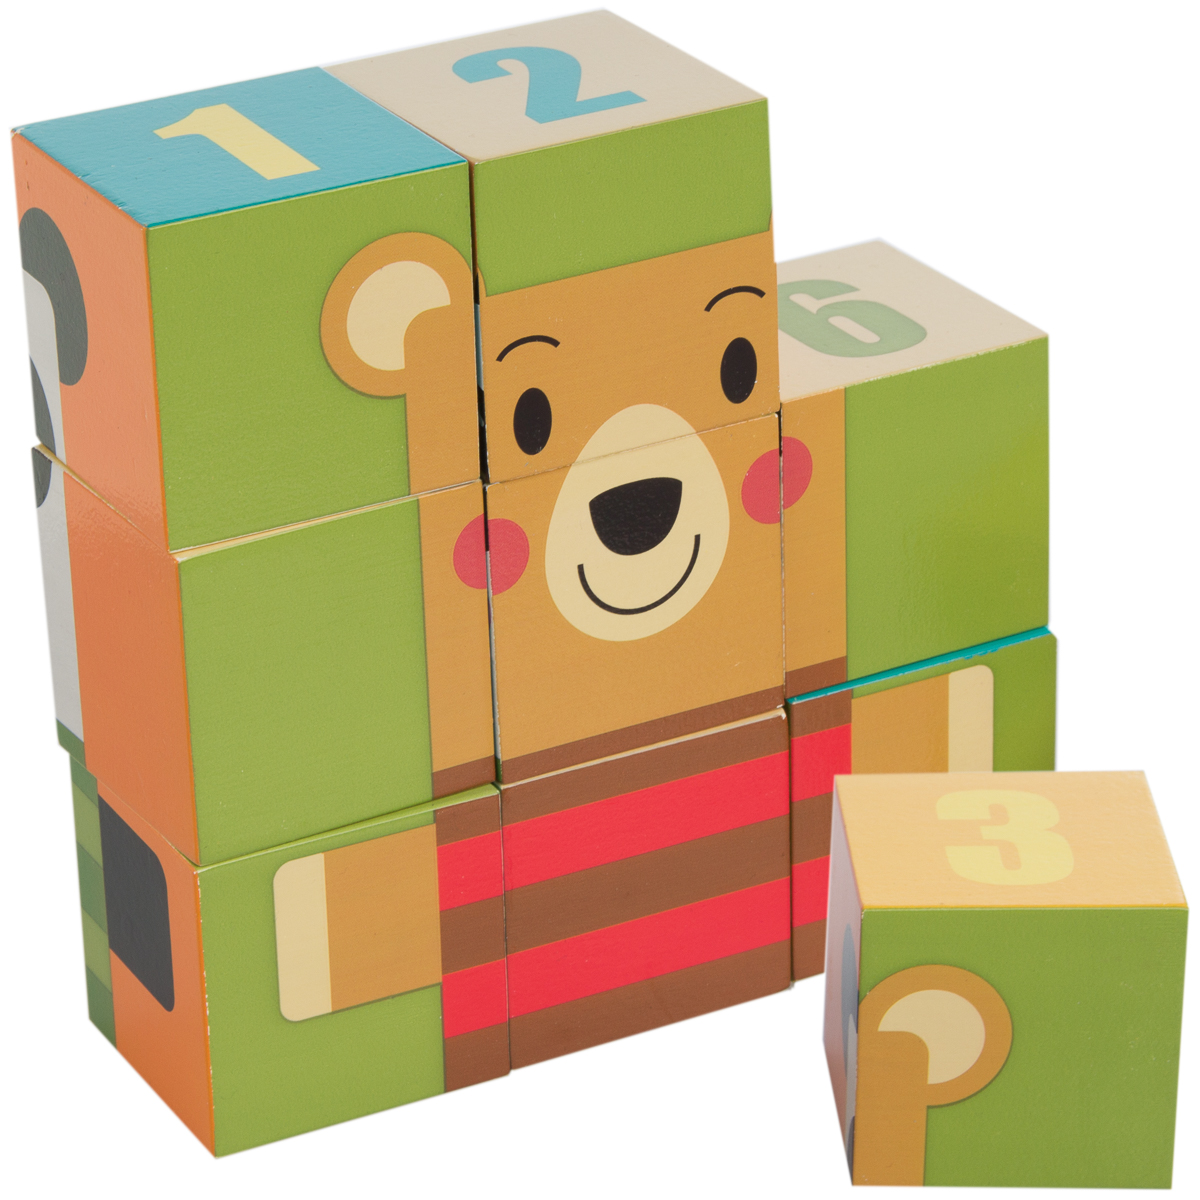 Demdaco 9 Piece Wooden Puzzle Blocks Set For Toddlers